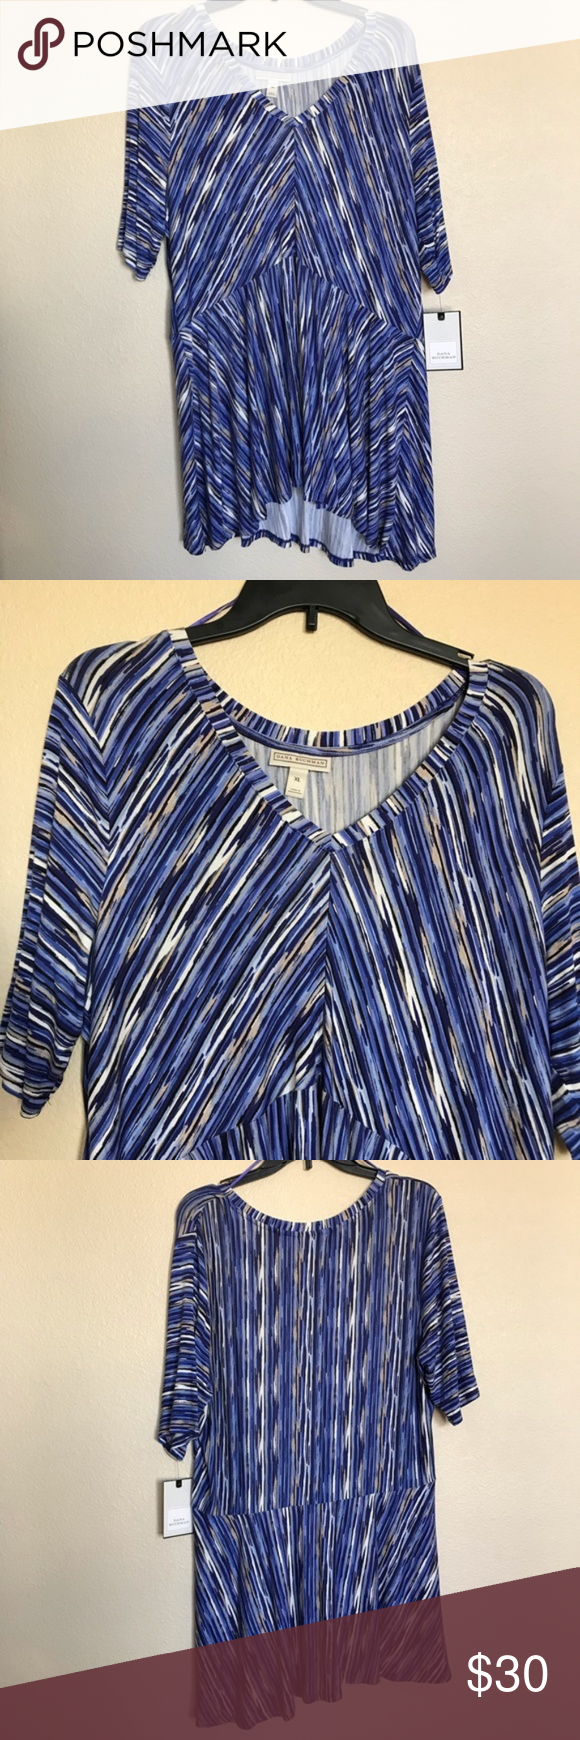 519b70b909c87e Dana Buchman Blouses - New With Tags 🏷 - Make me an offer Brand  Kohl s Dana  Buchman Size  XL Dana Buchman Tops Blouses